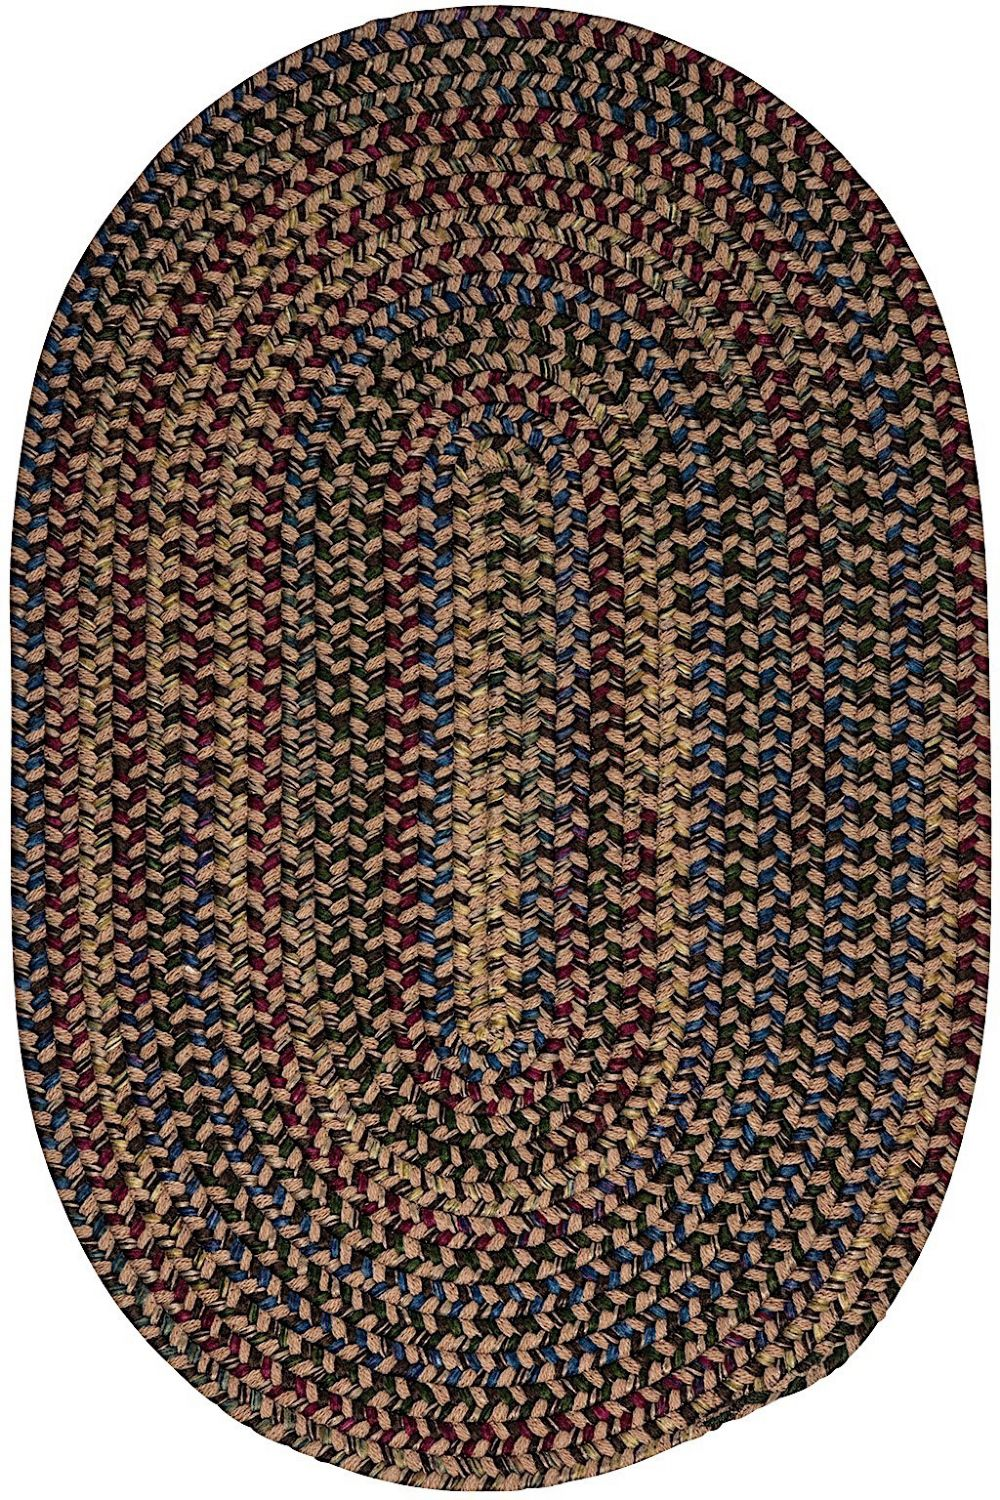 colonial mills midnight braided area rug collection